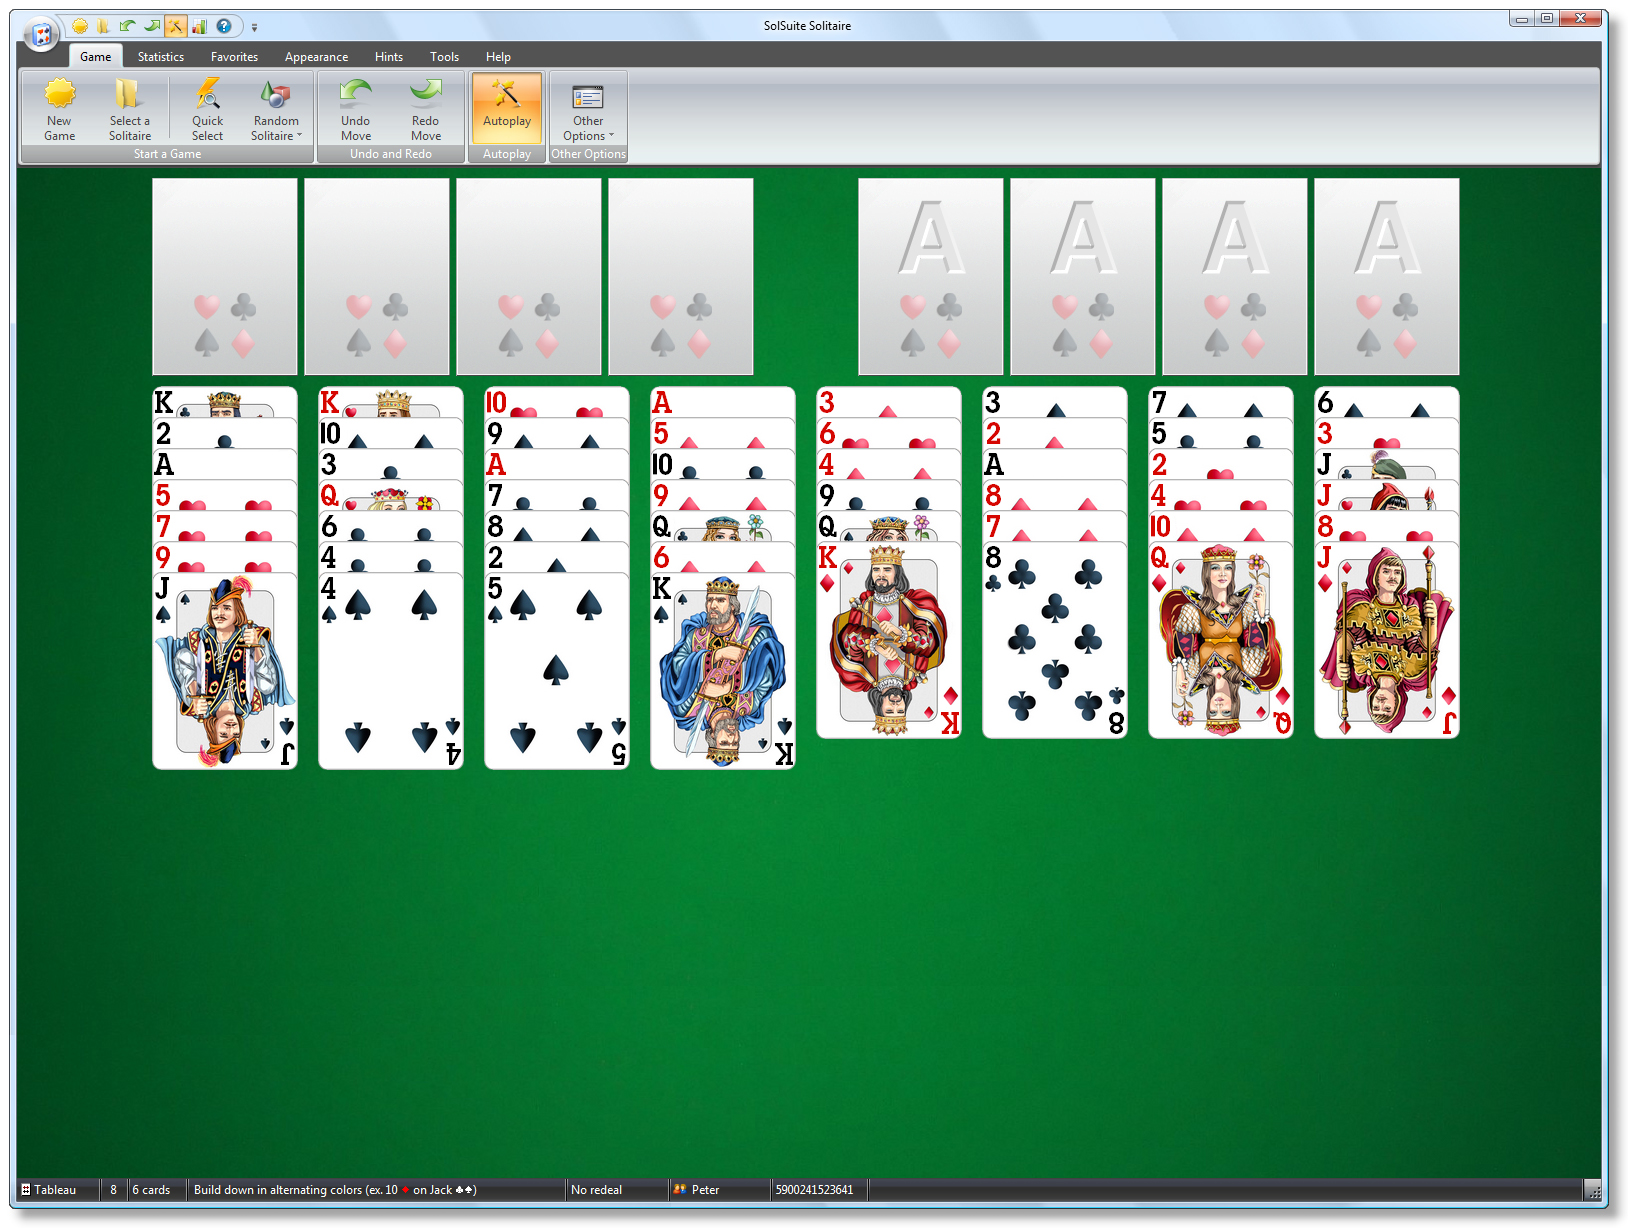 SolSuite Solitaire - FreeCell screenshot 1600x1200